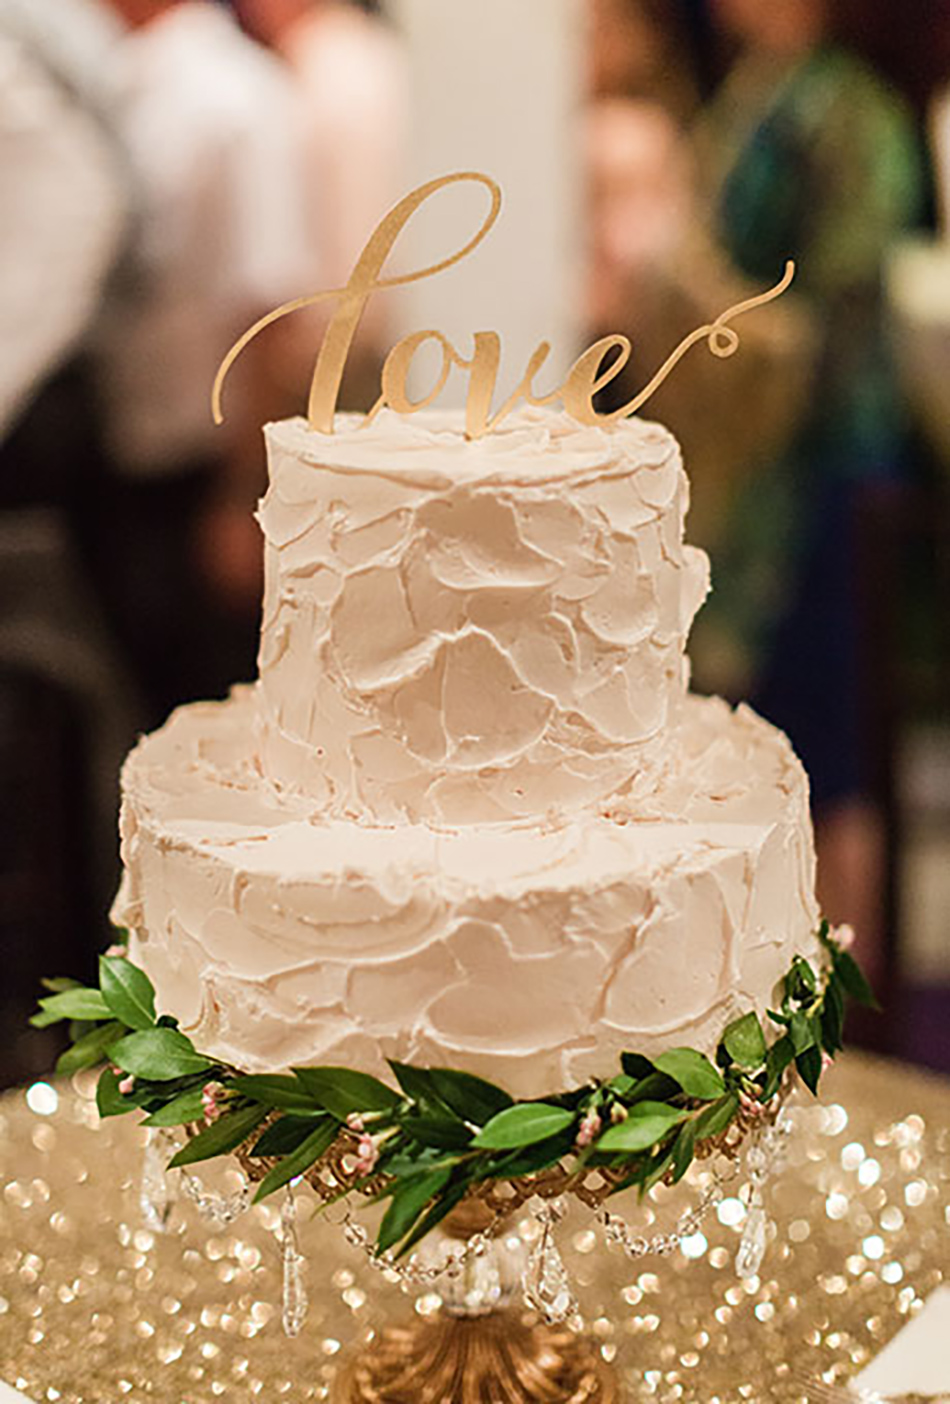 Bling up your barn wedding venue with sparkling metallic wedding cake accessories